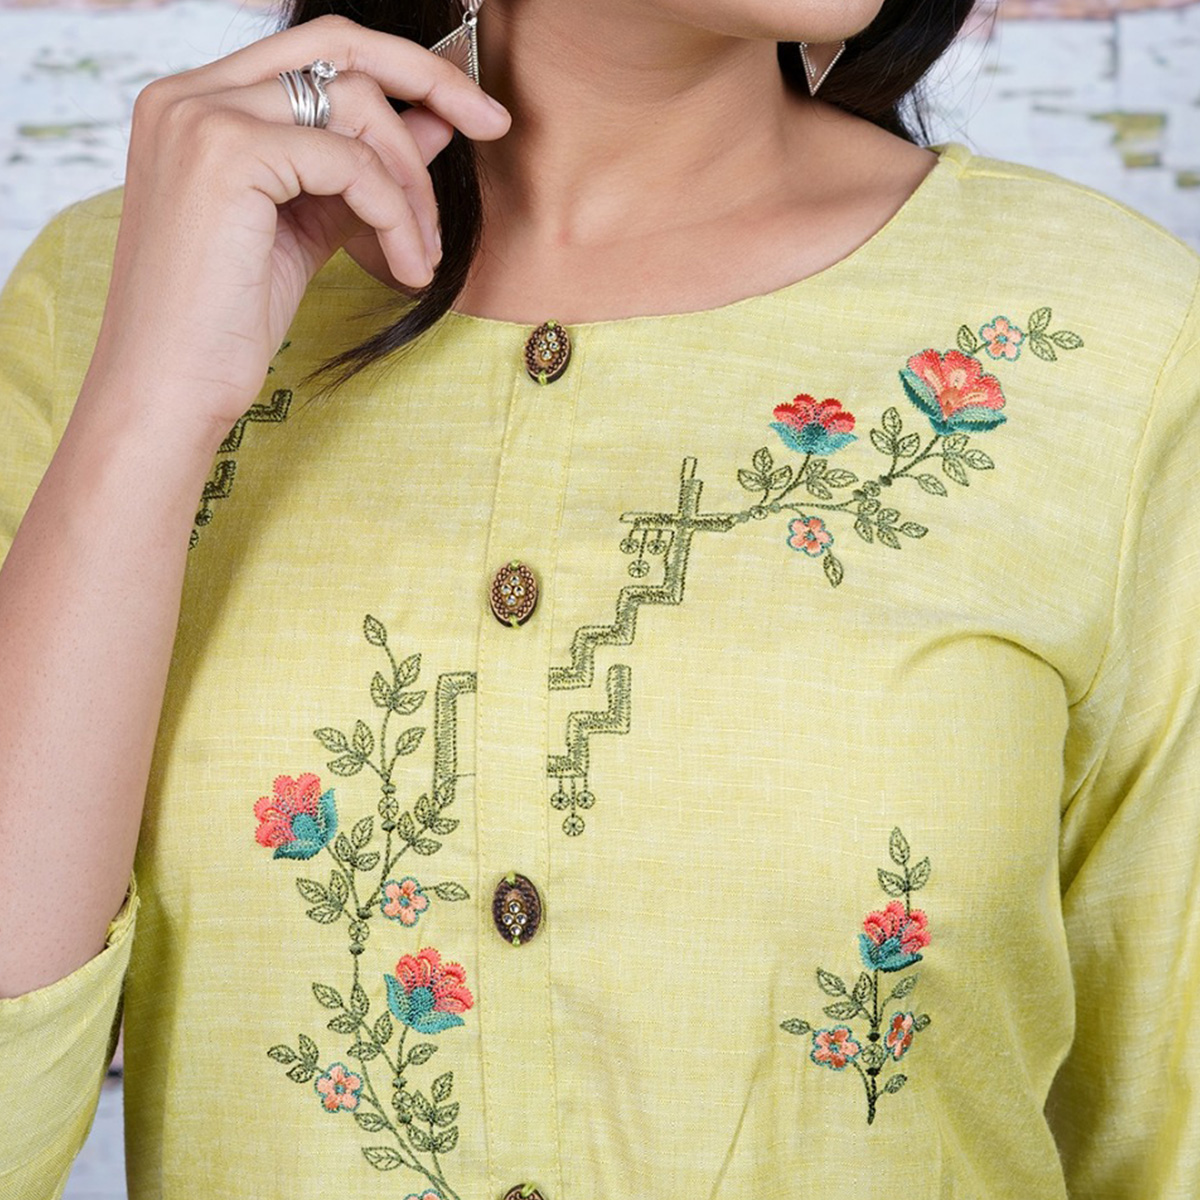 Aariya Designs - Light Green Colored Casual Wear Floral Embroidered Cotton Kurti